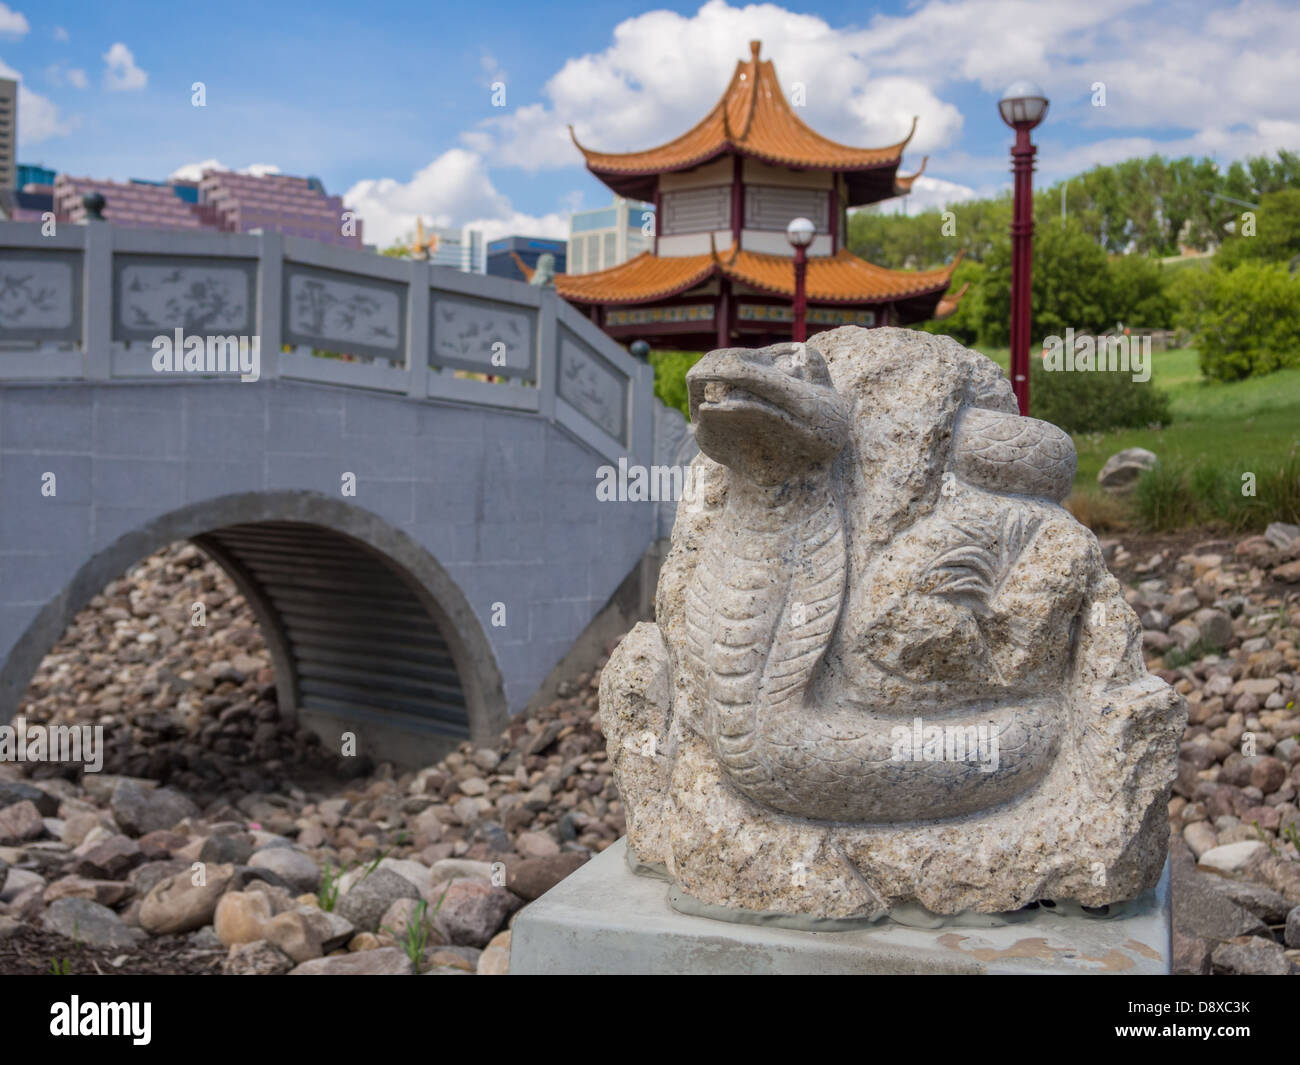 Pleasant Stone Carving Garden Stock Photos  Stone Carving Garden Stock  With Lovable Stone Snake Statue In Edmonton Chinese Garden  Stock Image With Amazing Wartime Kitchen And Garden Also Cat Safe Garden In Addition Textoline Garden Furniture And Wyevale Garden Centre Rugeley As Well As Canton Garden Additionally Garden Snail Facts For Kids From Alamycom With   Lovable Stone Carving Garden Stock Photos  Stone Carving Garden Stock  With Amazing Stone Snake Statue In Edmonton Chinese Garden  Stock Image And Pleasant Wartime Kitchen And Garden Also Cat Safe Garden In Addition Textoline Garden Furniture From Alamycom